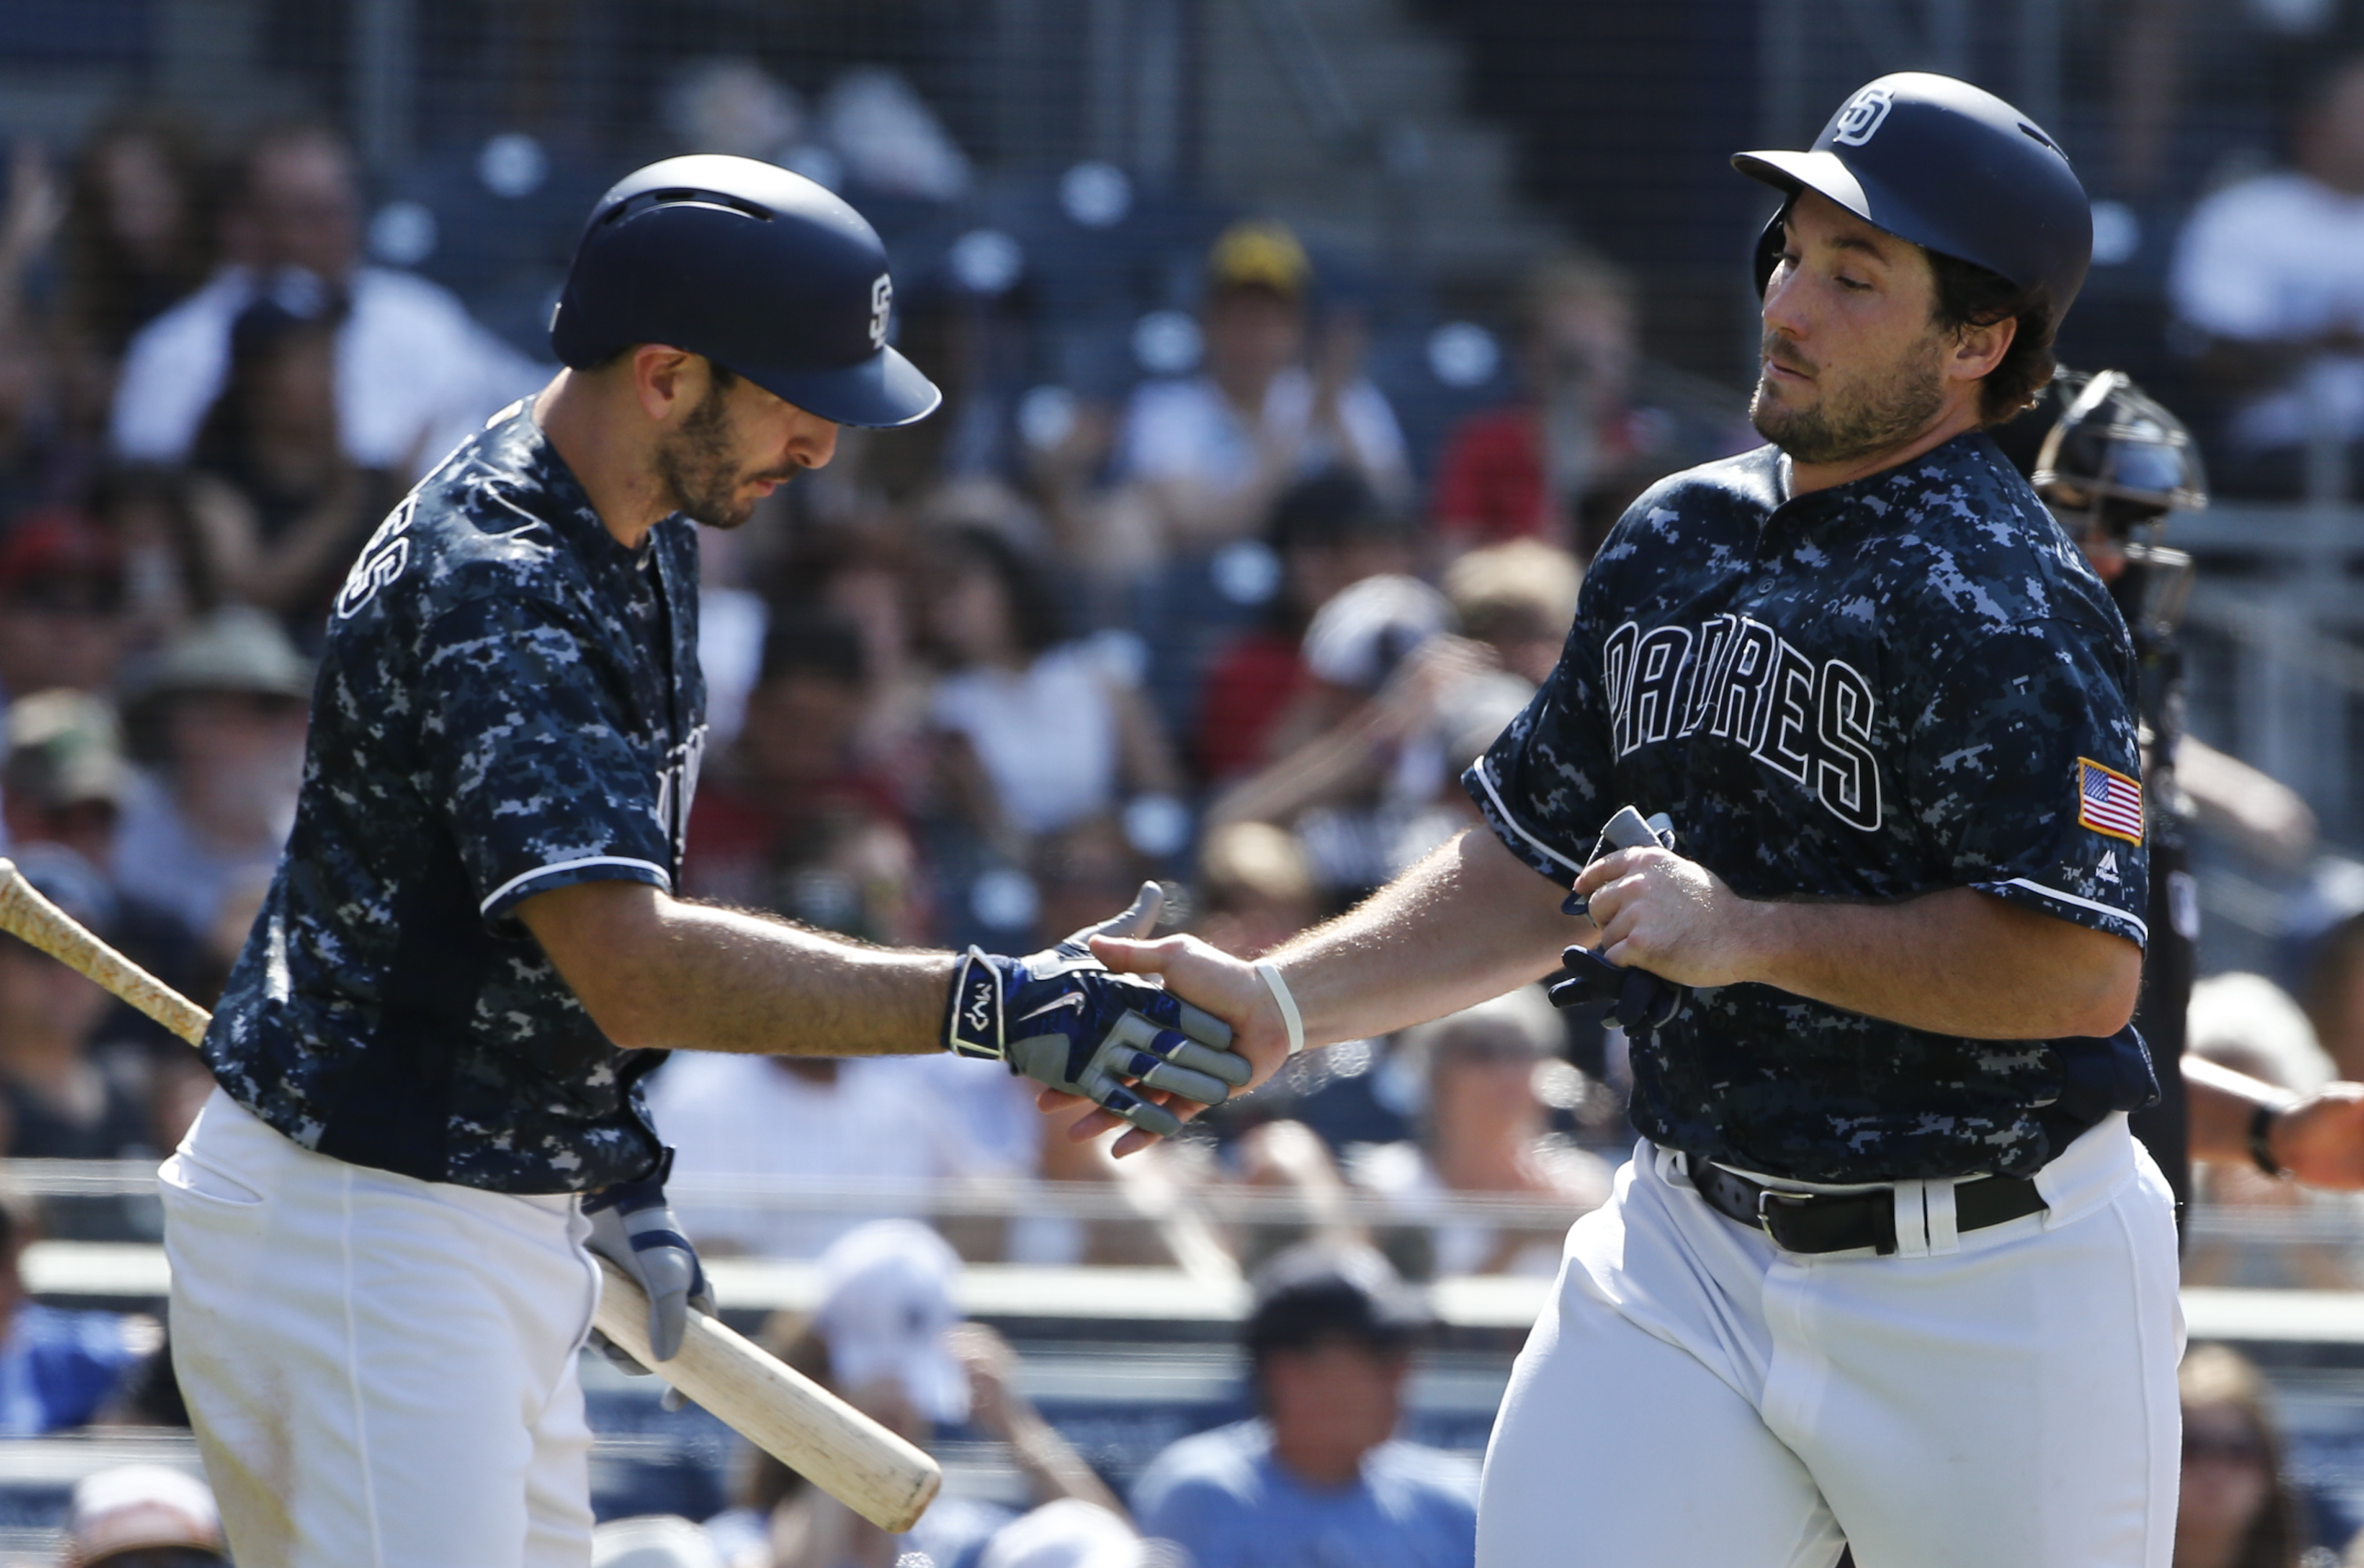 San Diego Padres' Brett Wallace, right, is congratulated by Adam Rosales while scoring against the Arizona Diamondbacks in the sixth inning of a baseball game Sunday, Aug. 21, 2016, in San Diego. (AP Photo/Lenny Ignelzi)